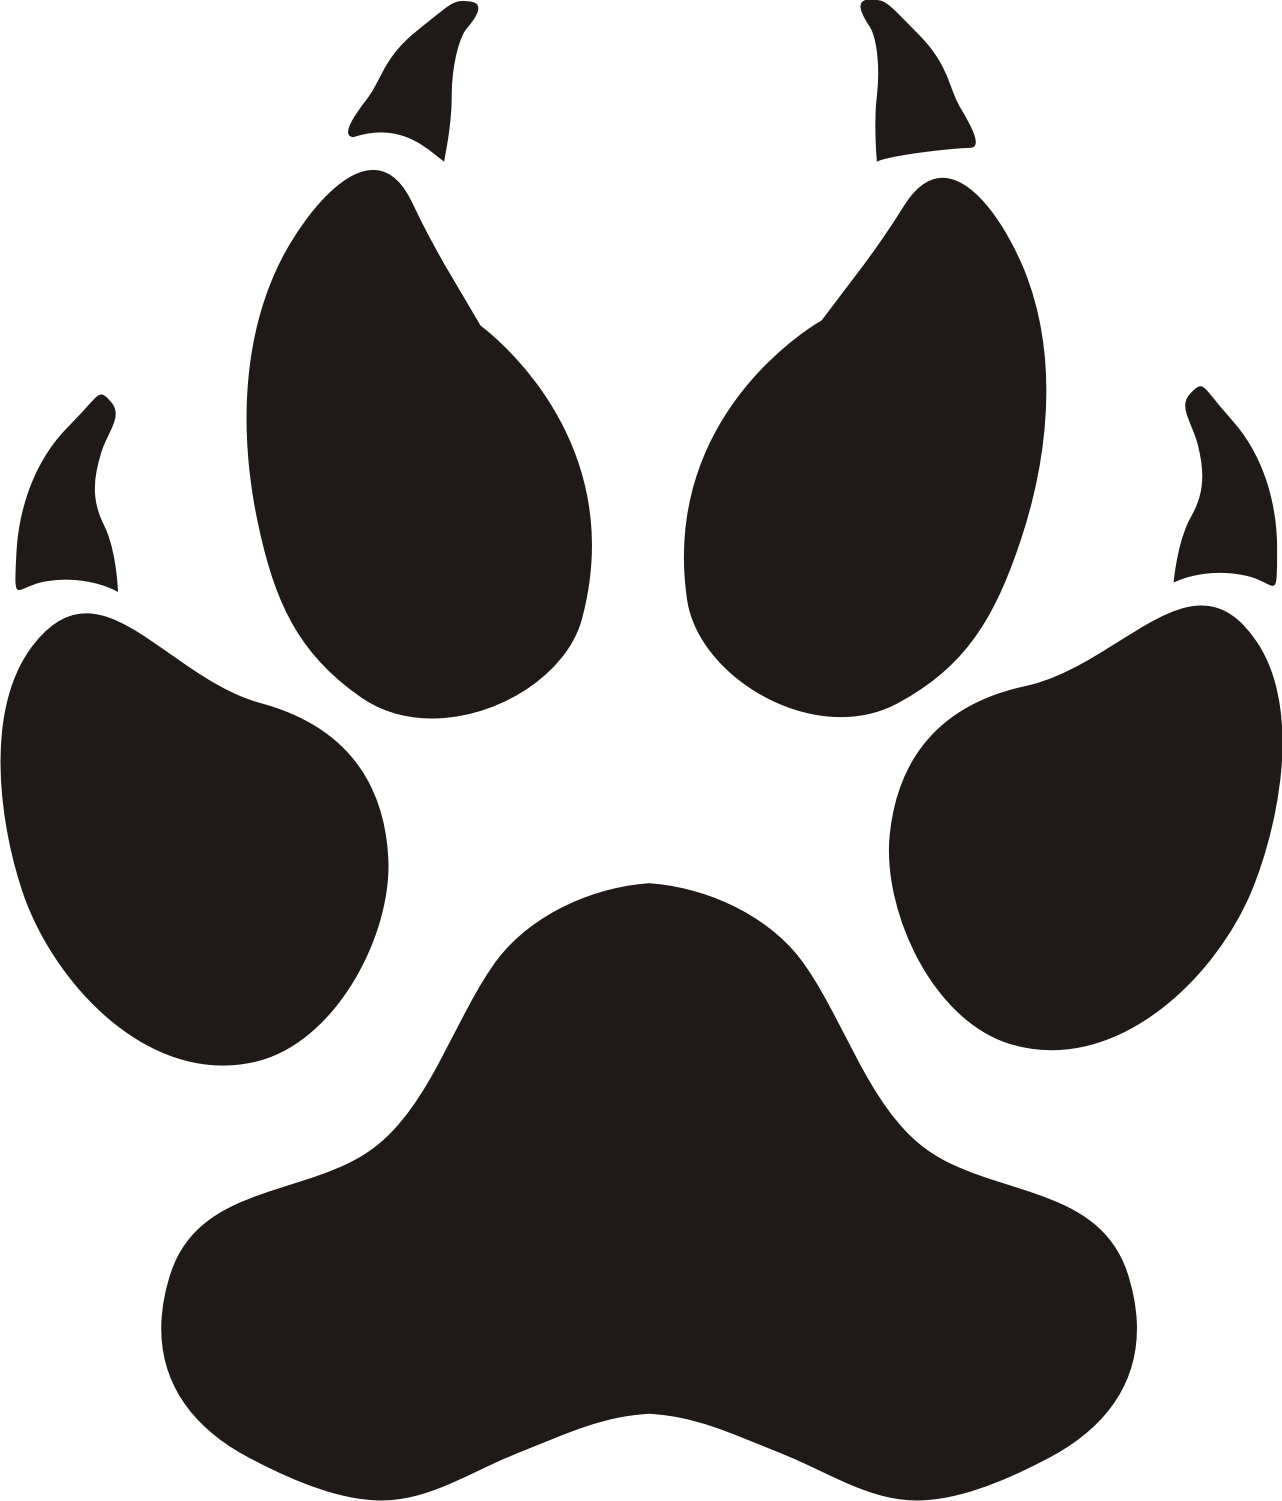 Paw print tattoos on dog paw prints scroll clipart 3 5 - Clipartix